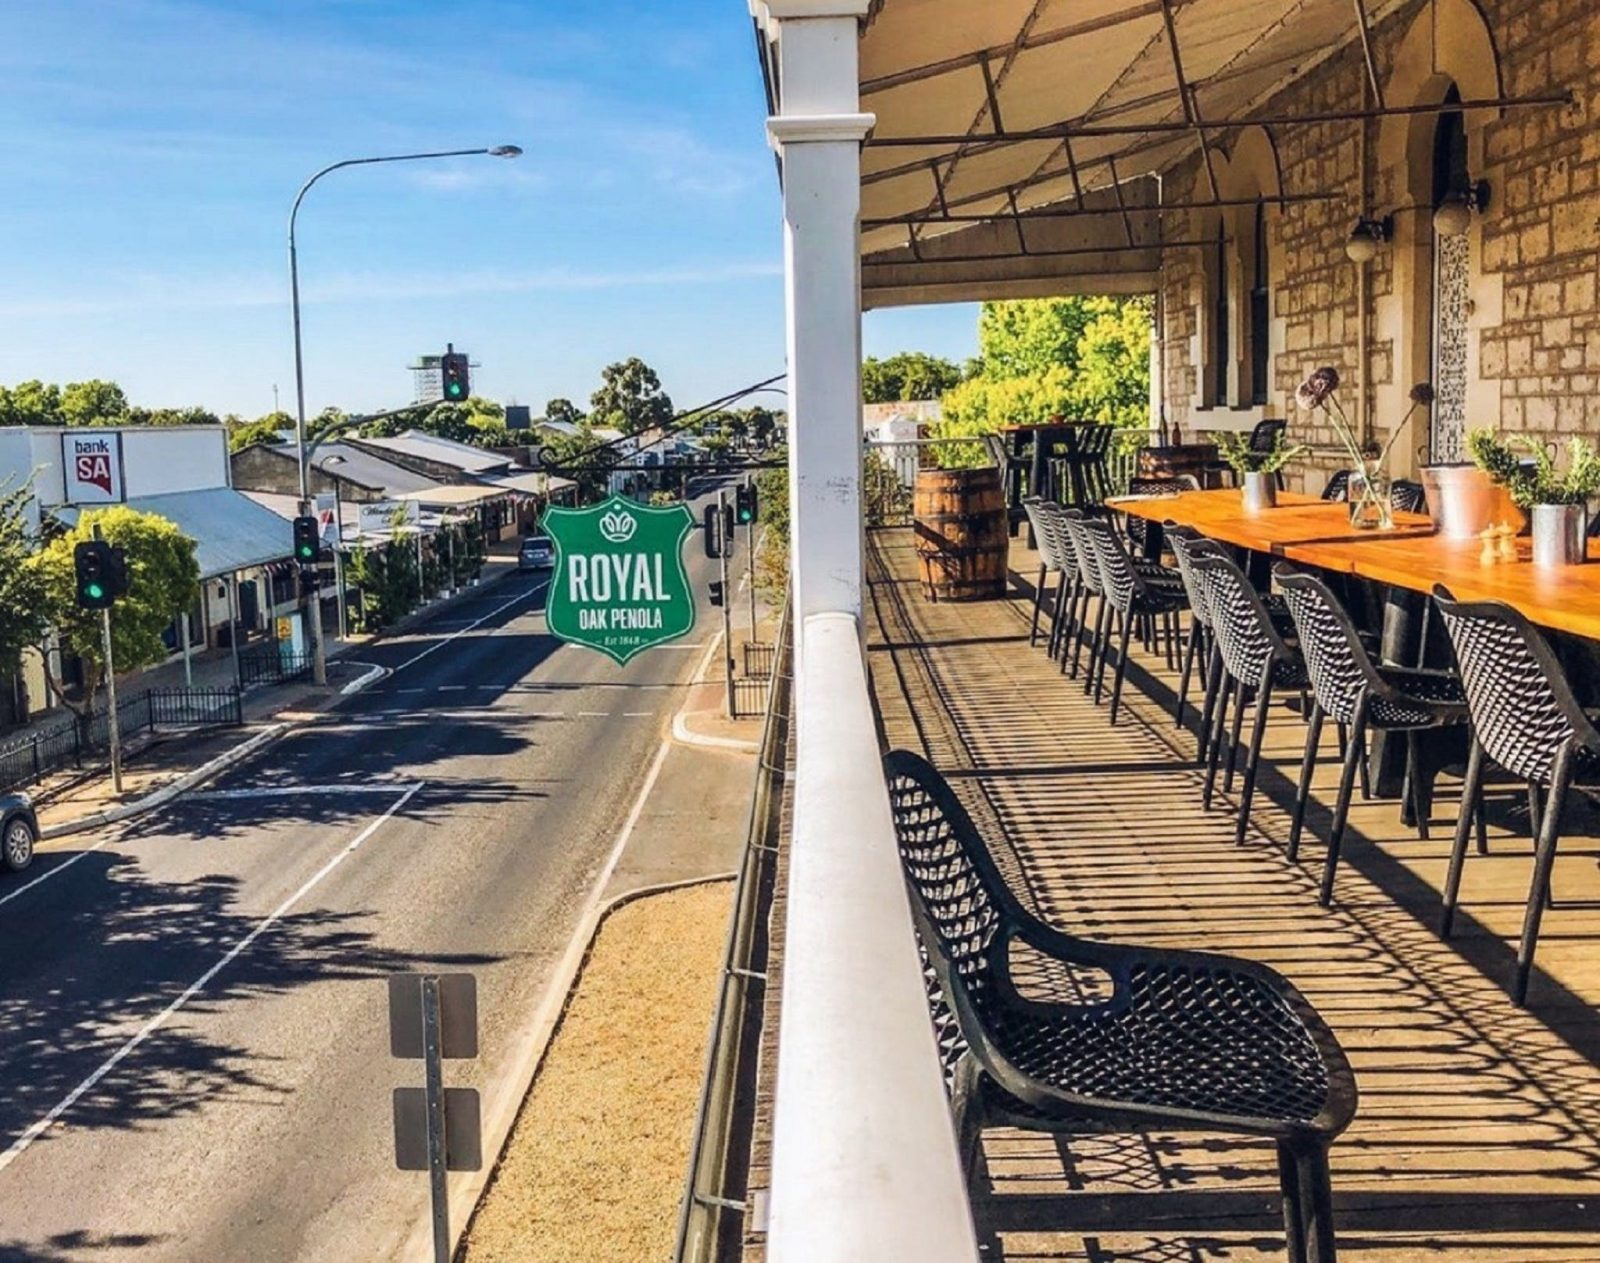 Dining table set for a group of 20 people overlooking the township and mainstreet of Penola